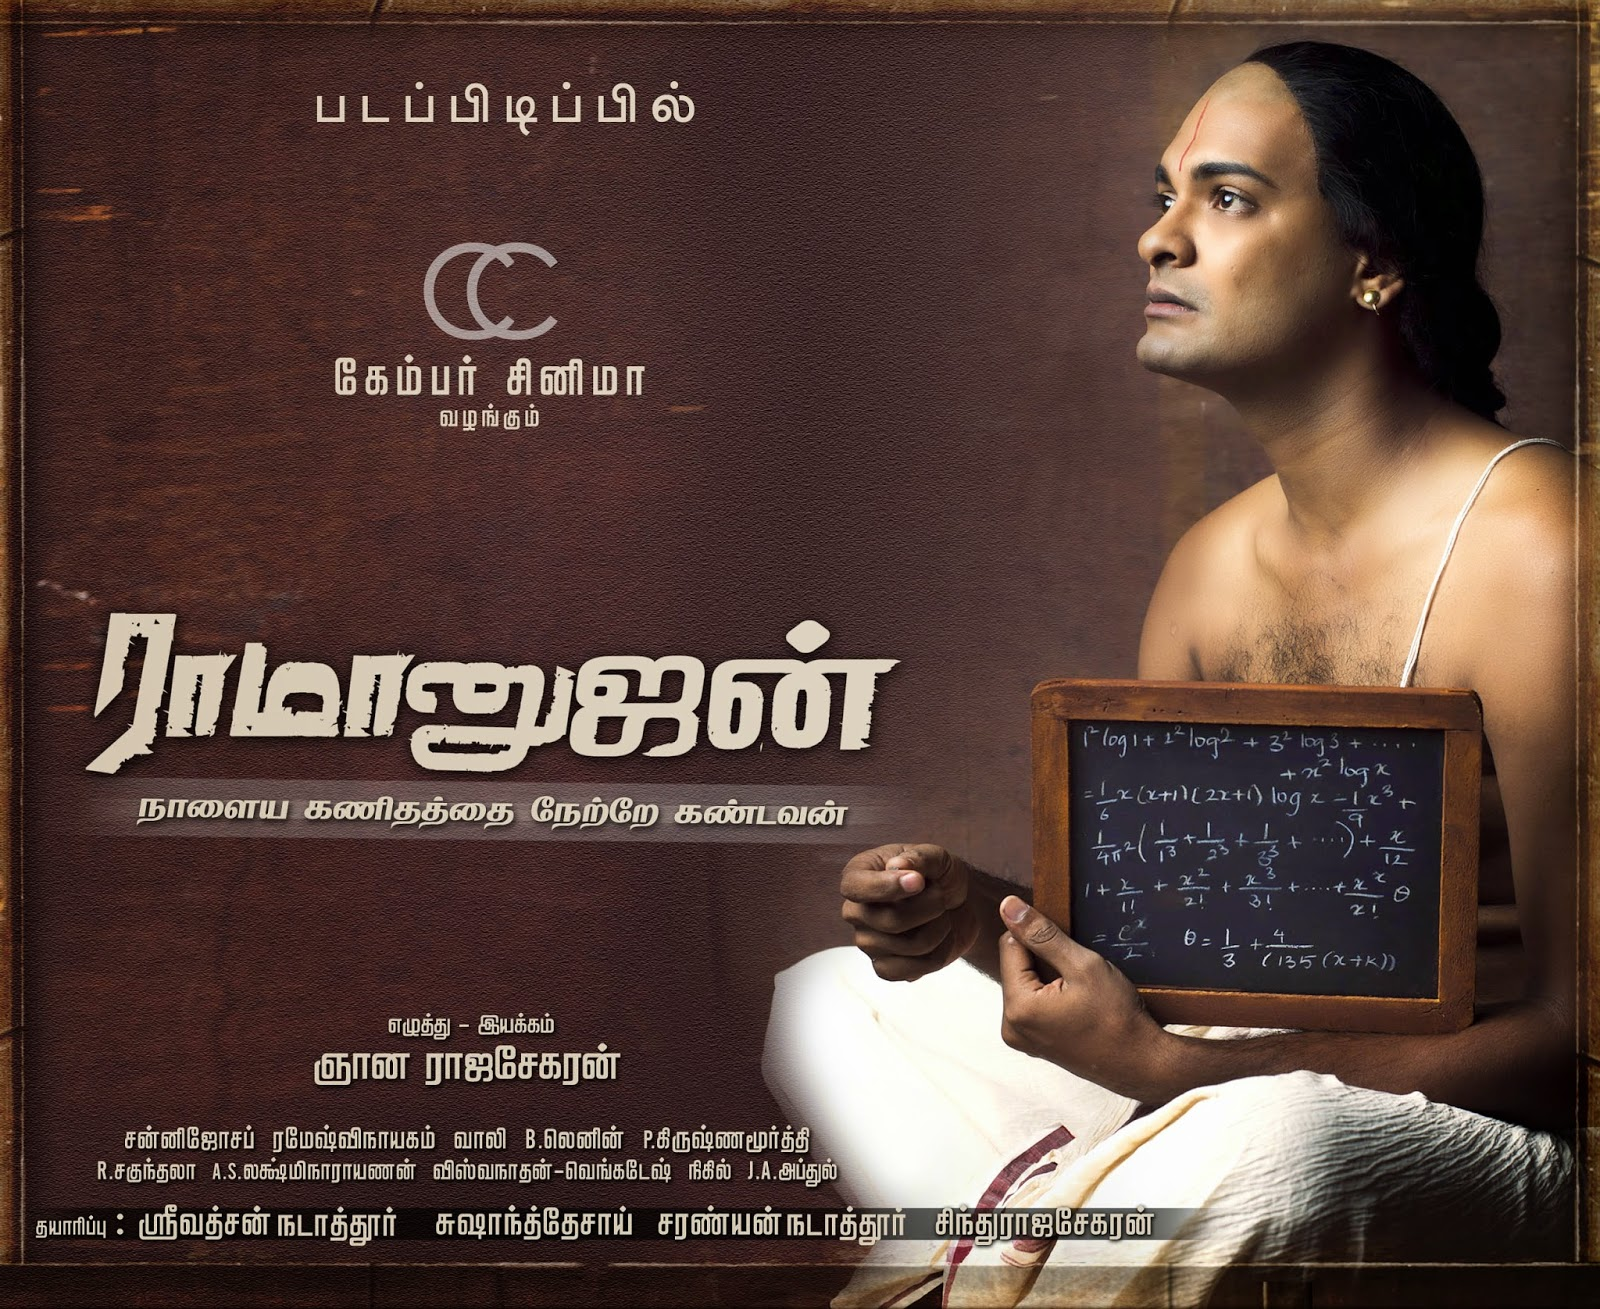 [MP3] Ramanujan 2014 Audio Download